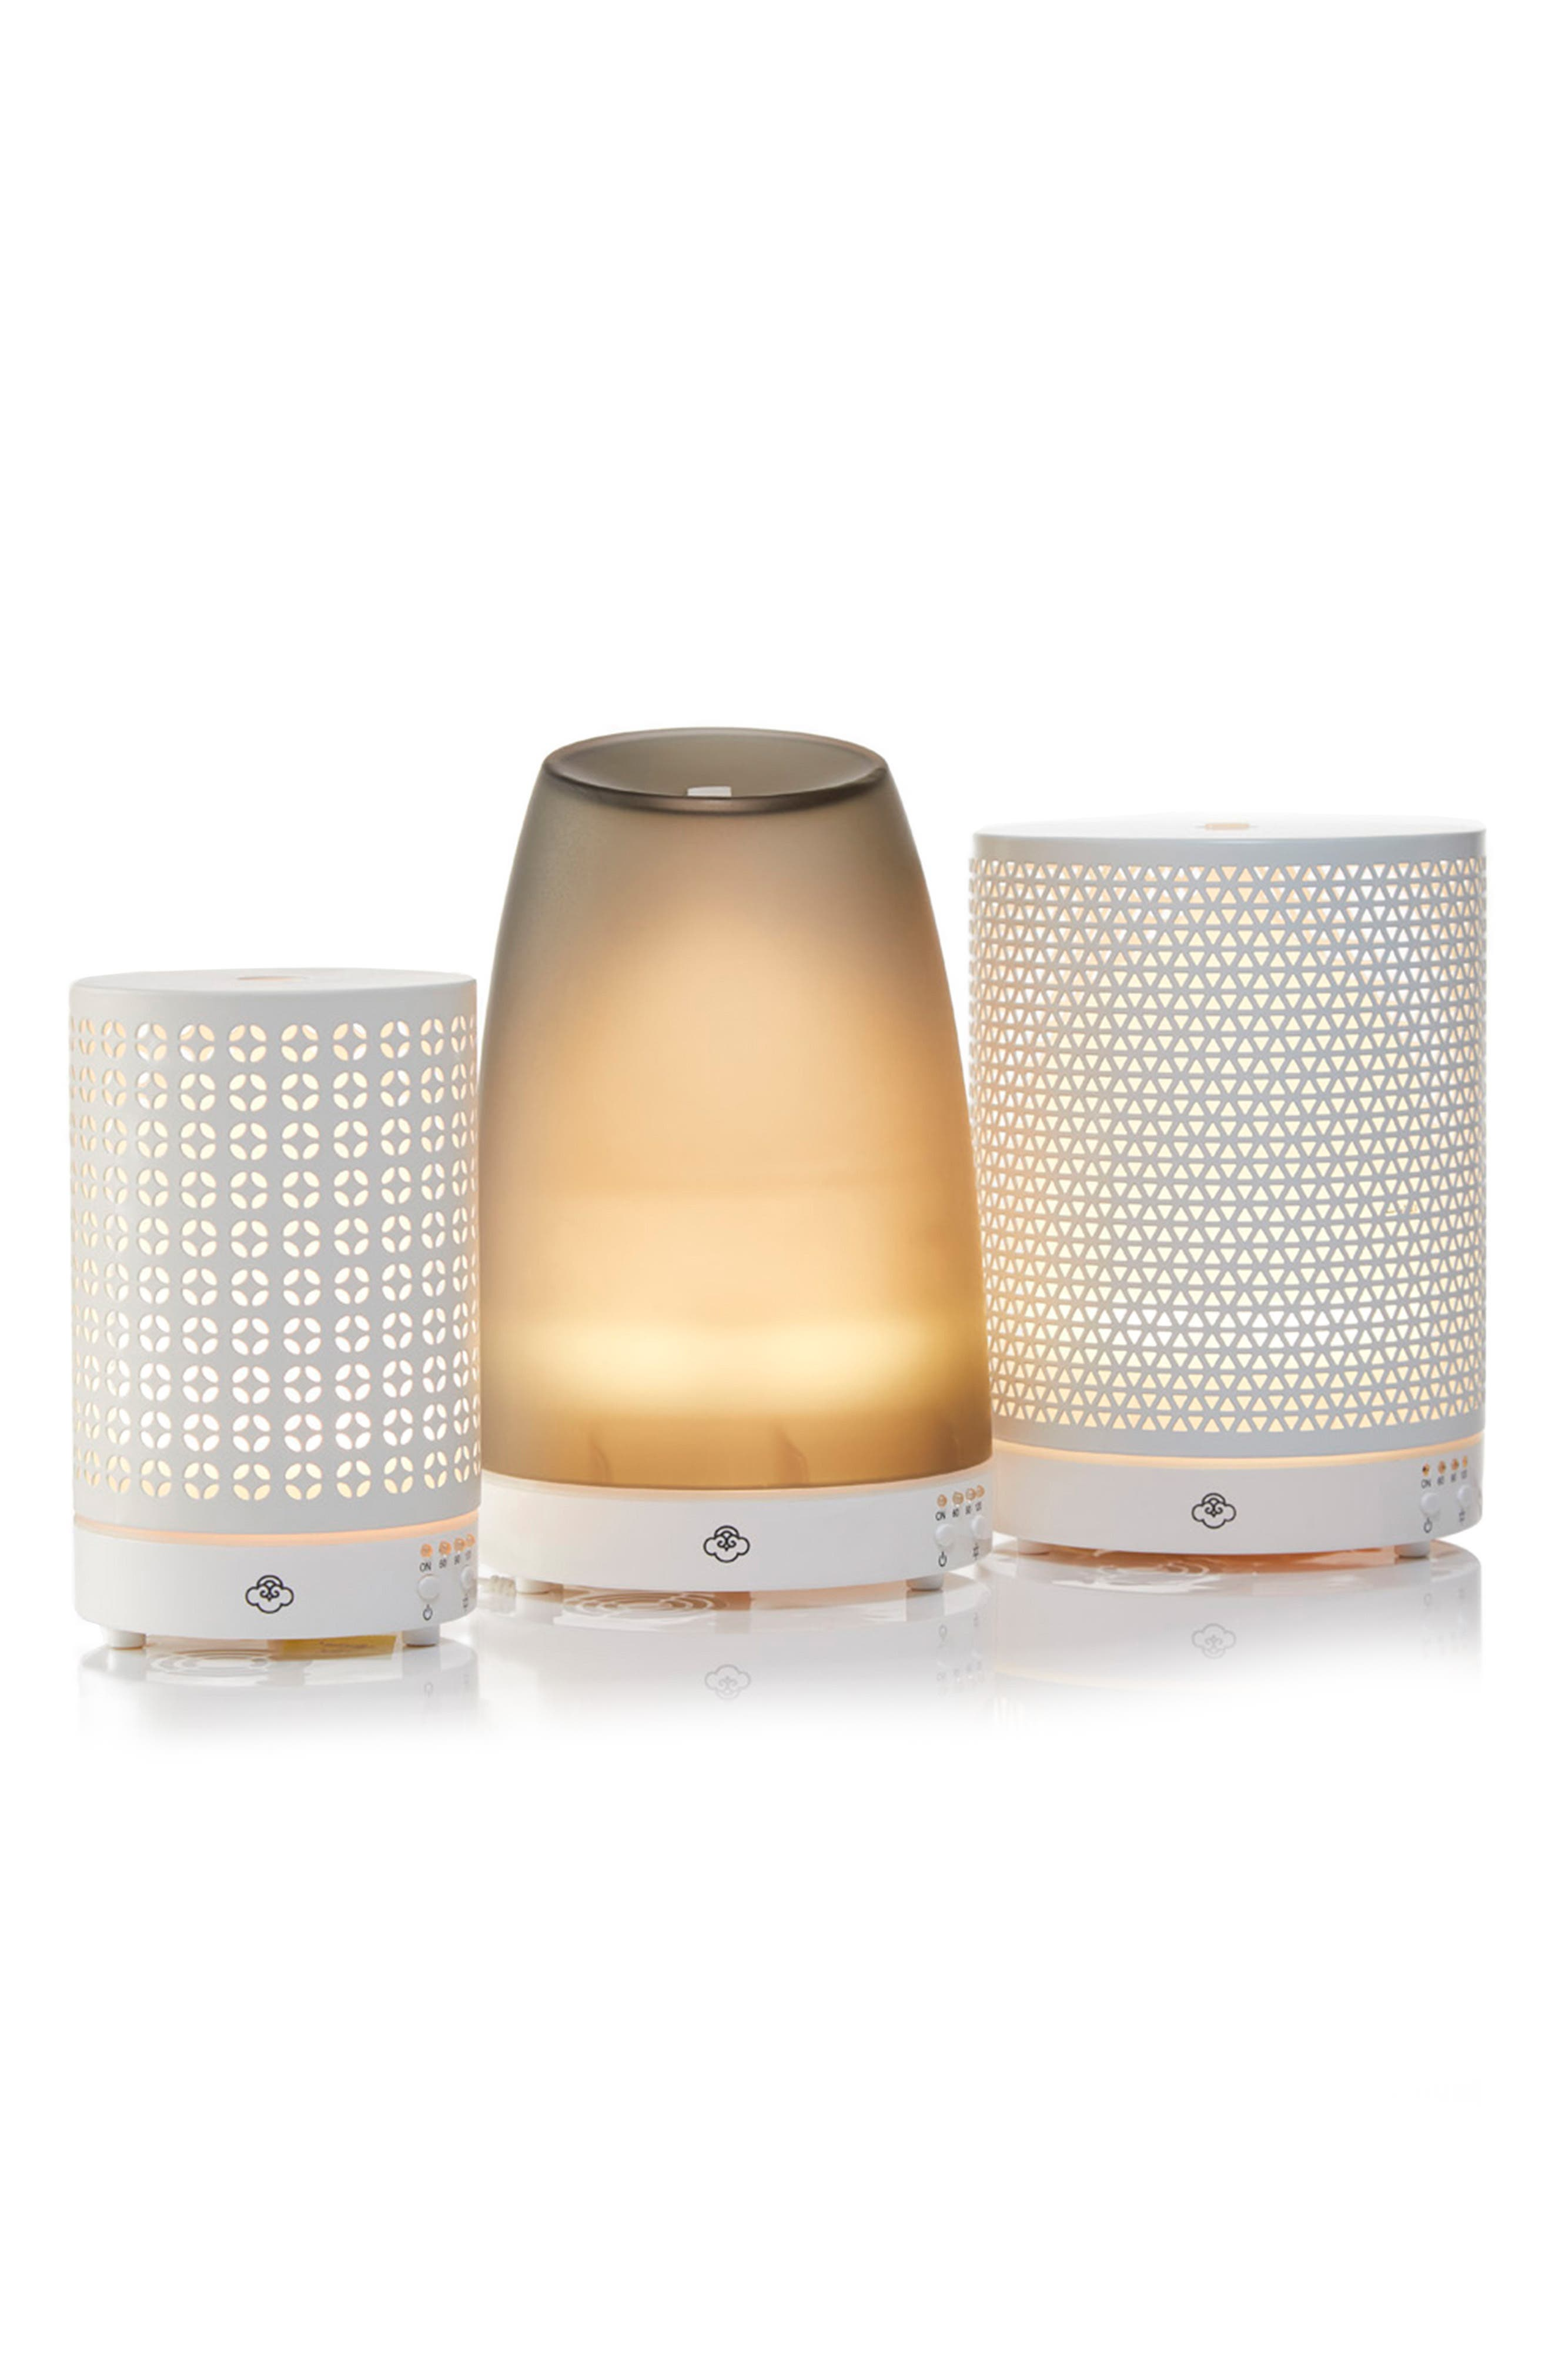 Cool Mist Cosmos Electric Aromatherapy Diffuser,                             Alternate thumbnail 2, color,                             White